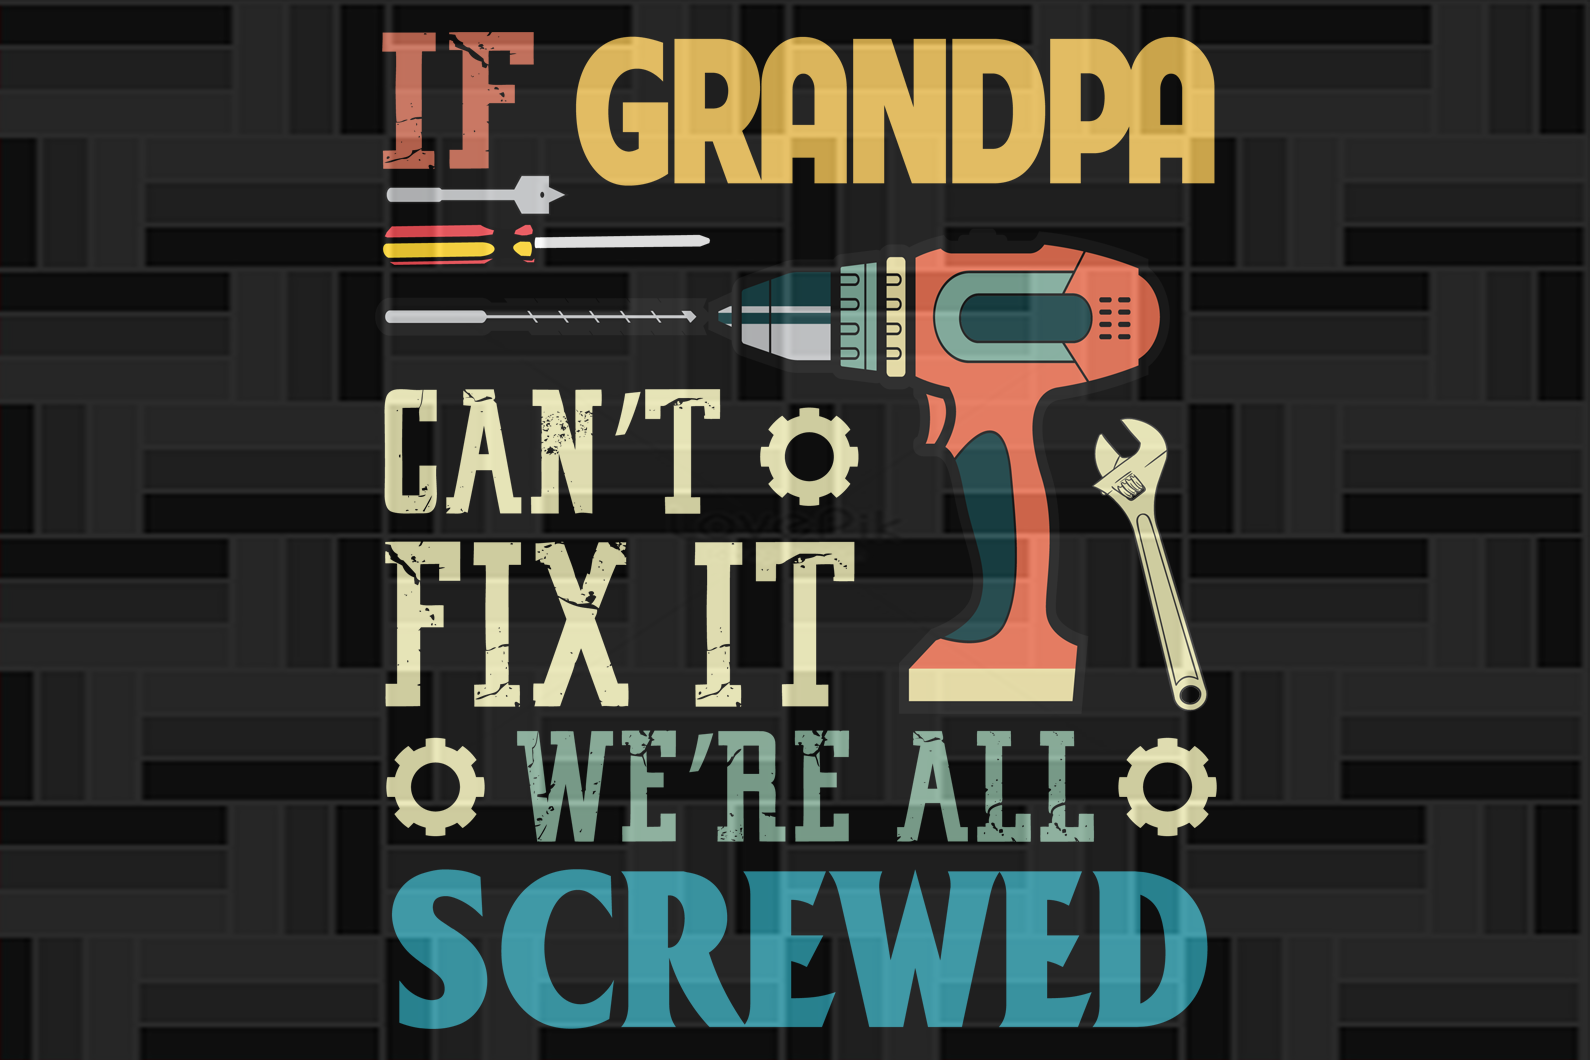 If grandpa can't fix it we're all screwed , papa svg, baba svg,father's day svg, father svg, dad svg, daddy svg, poppop svg Files For Silhouette, Files For Cricut, SVG, DXF, EPS, PNG, Instant Download